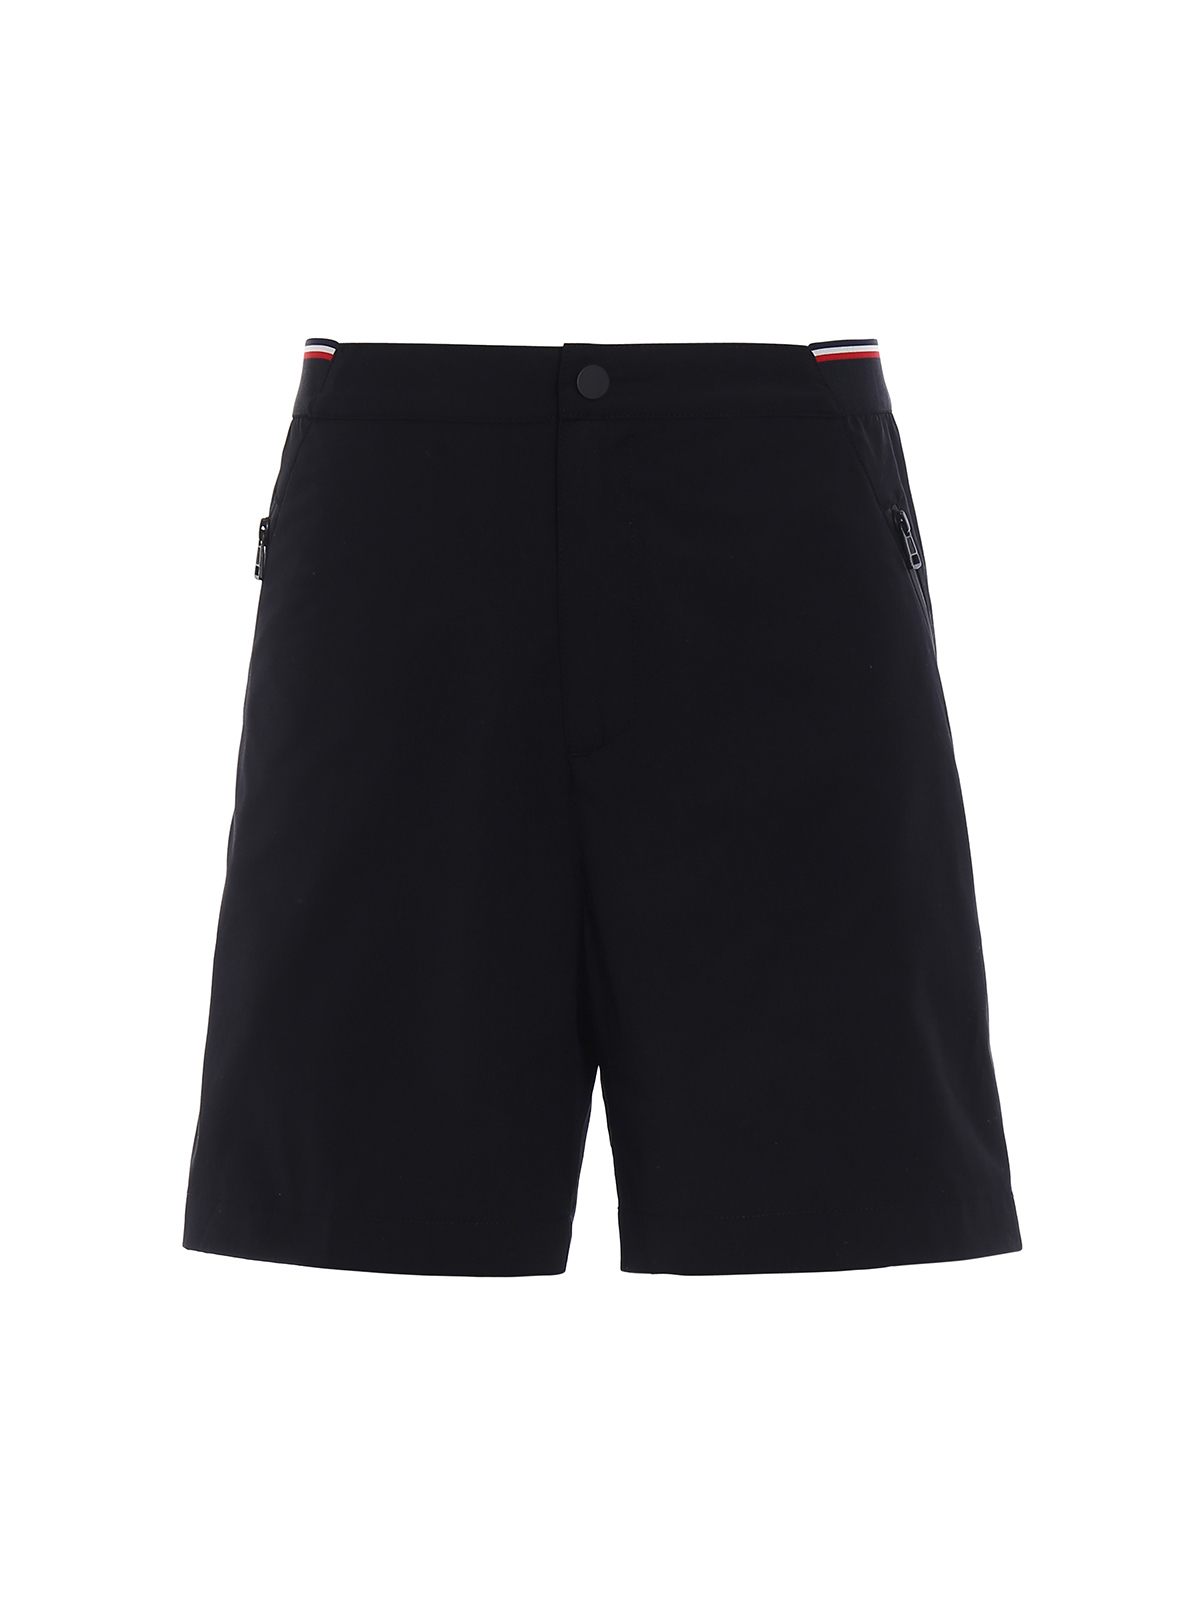 MONCLER: Trousers Shorts - Cotton shorts